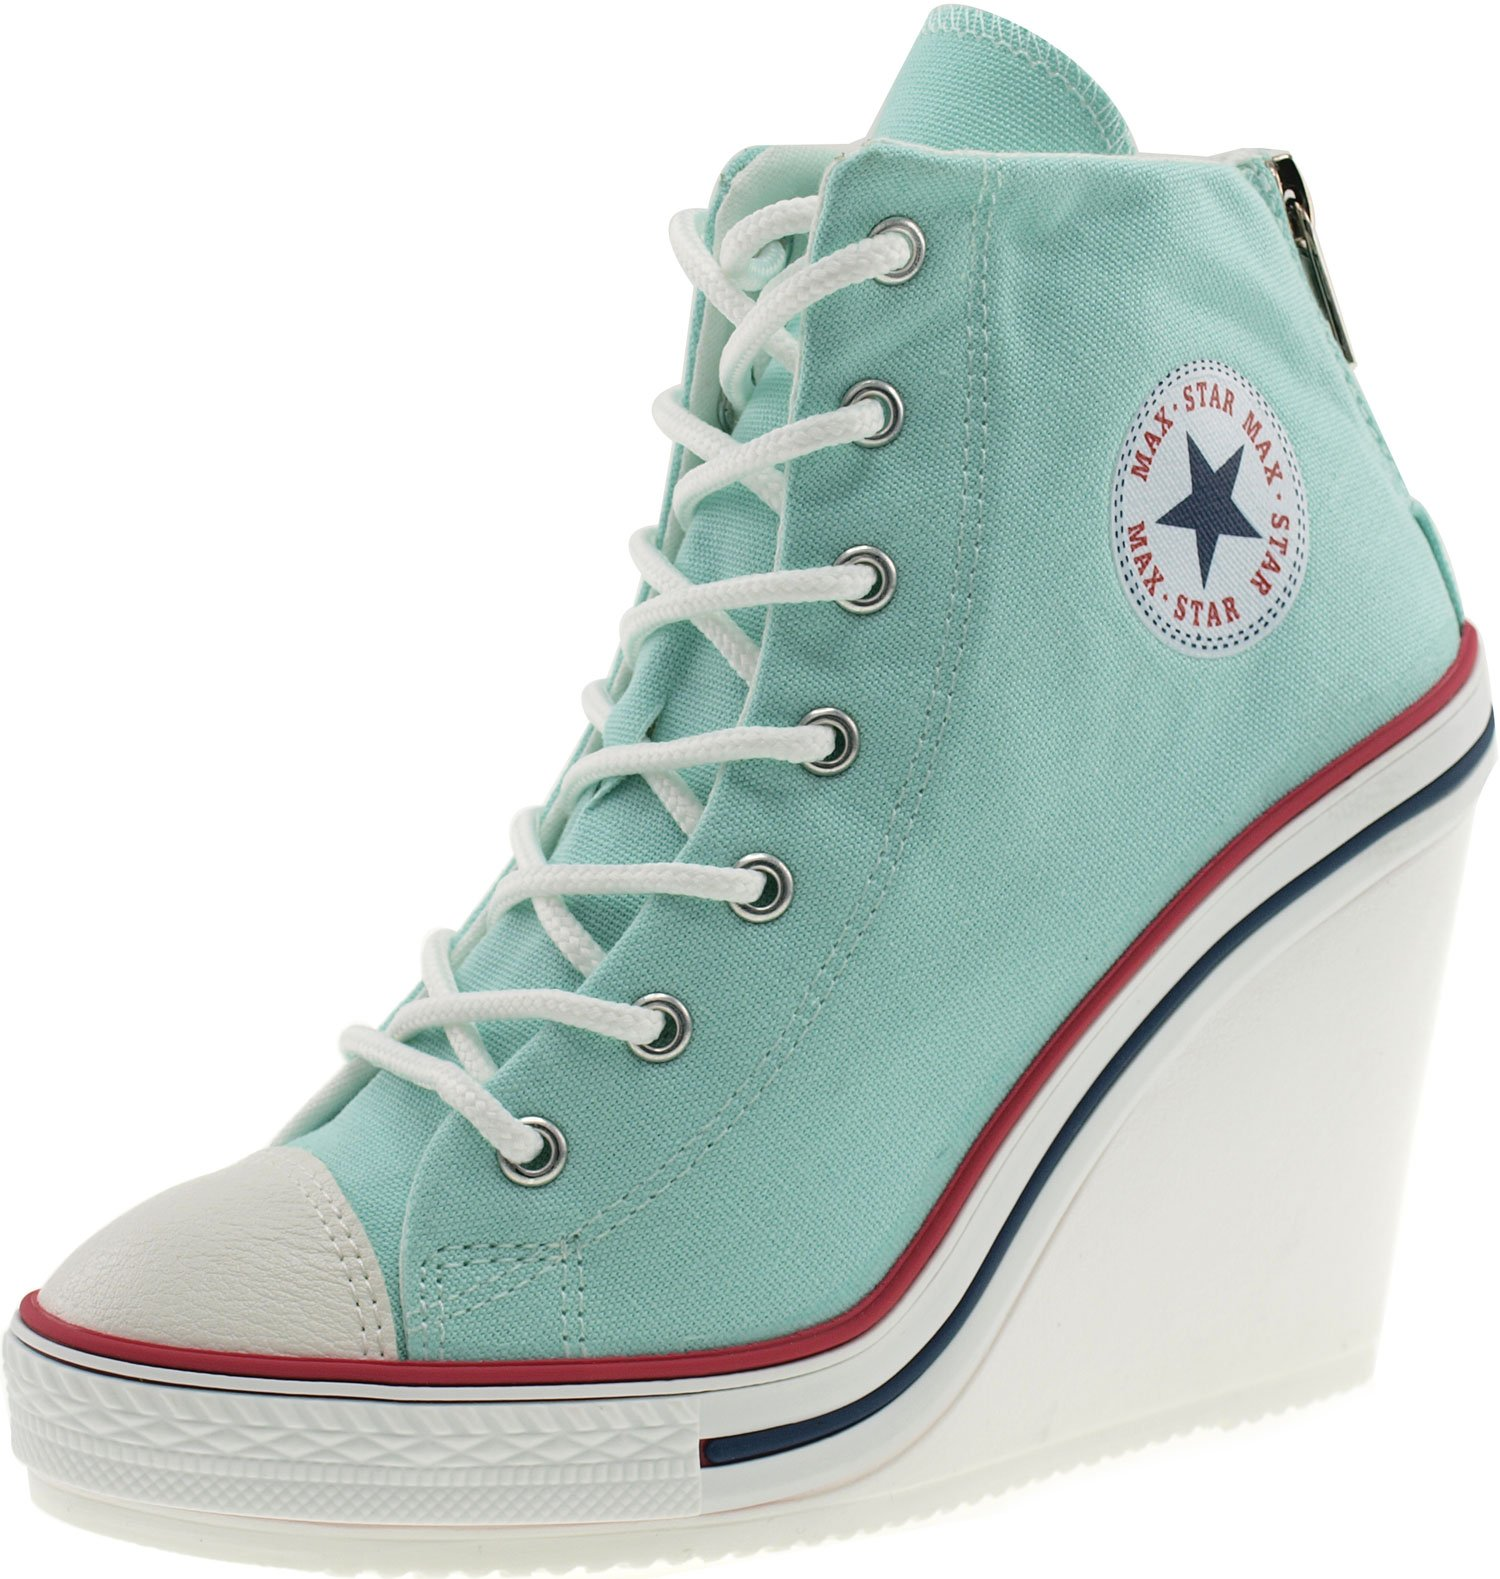 Maxstar Women's 777 Back Zipper Canvas High Wedge Heel Sneakers Mint 9 B(M) US